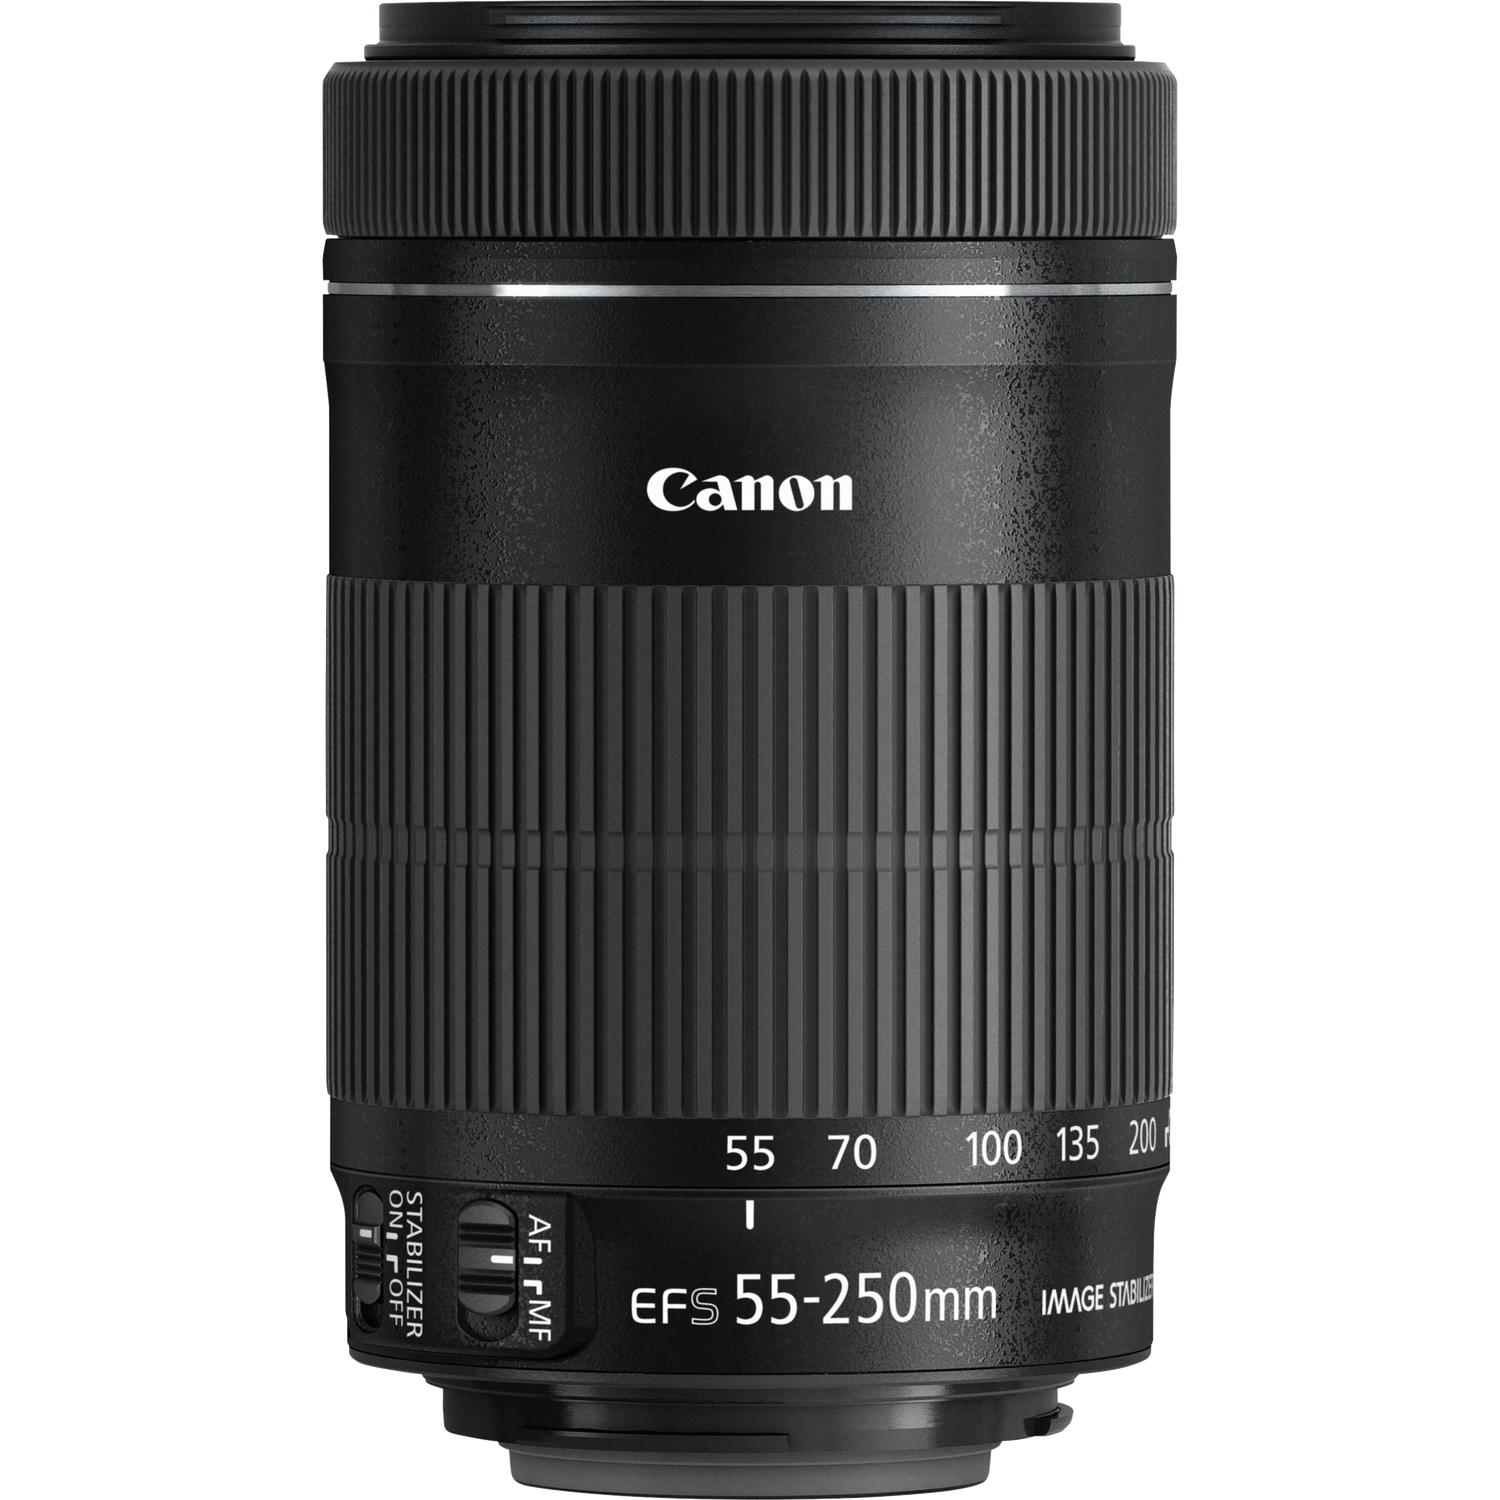 objectif canon ef s 55 250mm f 4 5 6 is stm dans objectifs zooms canon france boutique. Black Bedroom Furniture Sets. Home Design Ideas